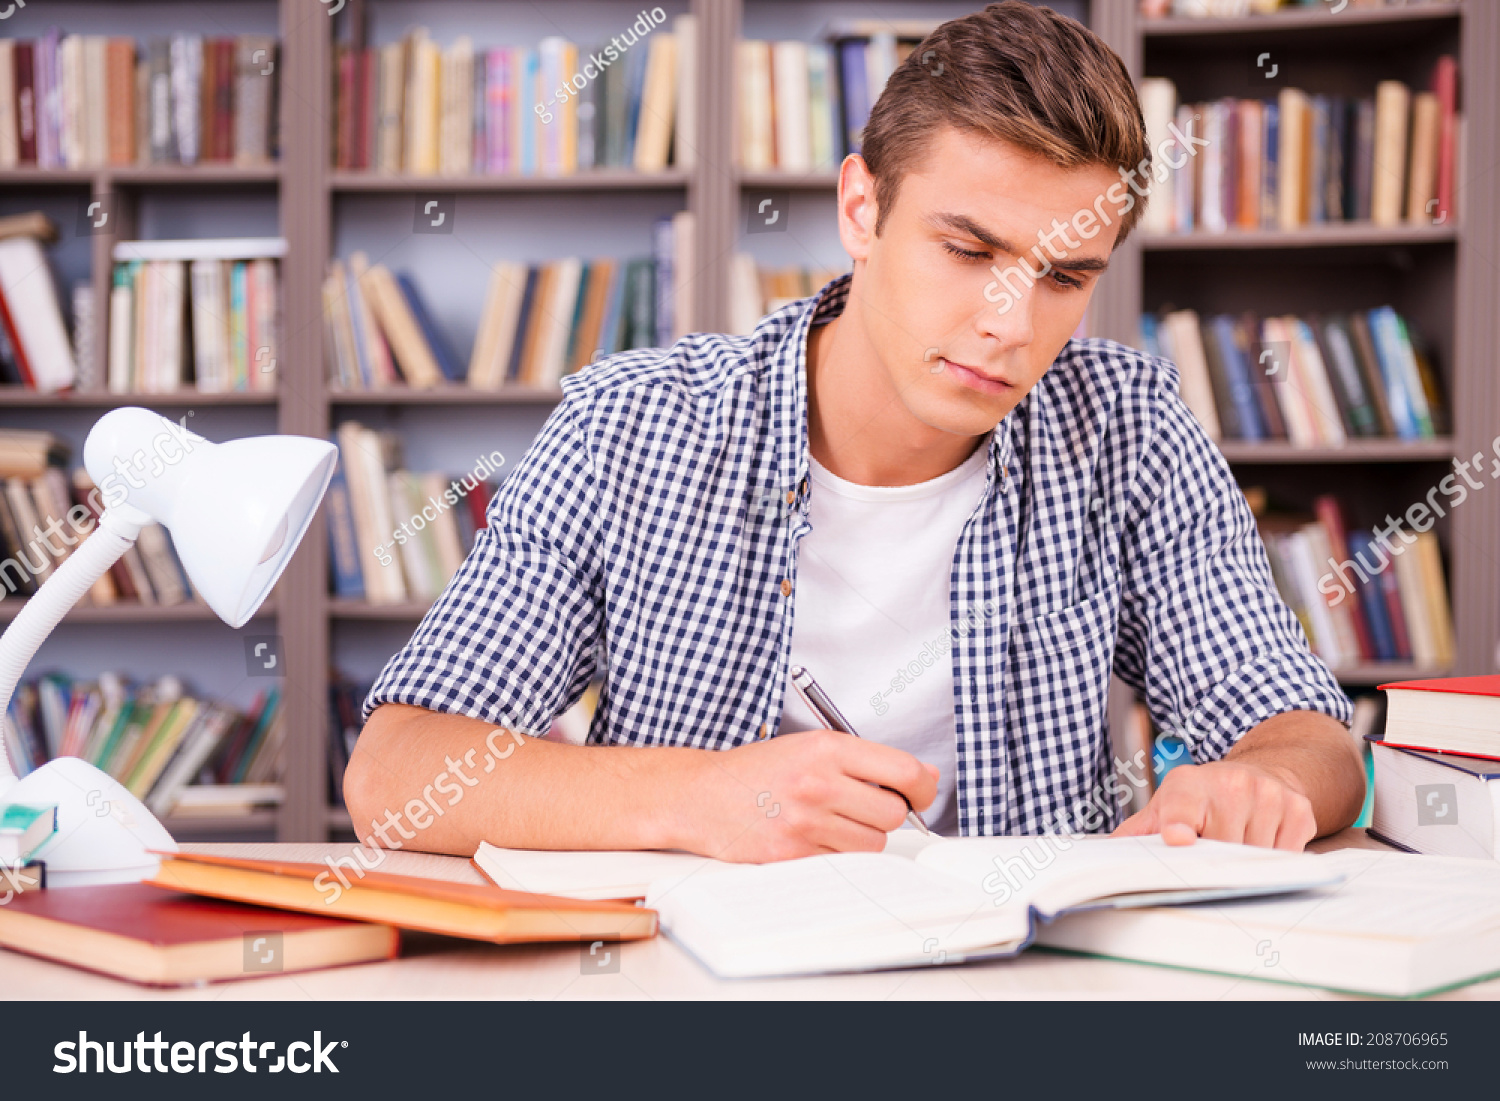 studying hard good grades confident young stock photo 208706965 studying hard for good grades confident young man making research while sitting in library